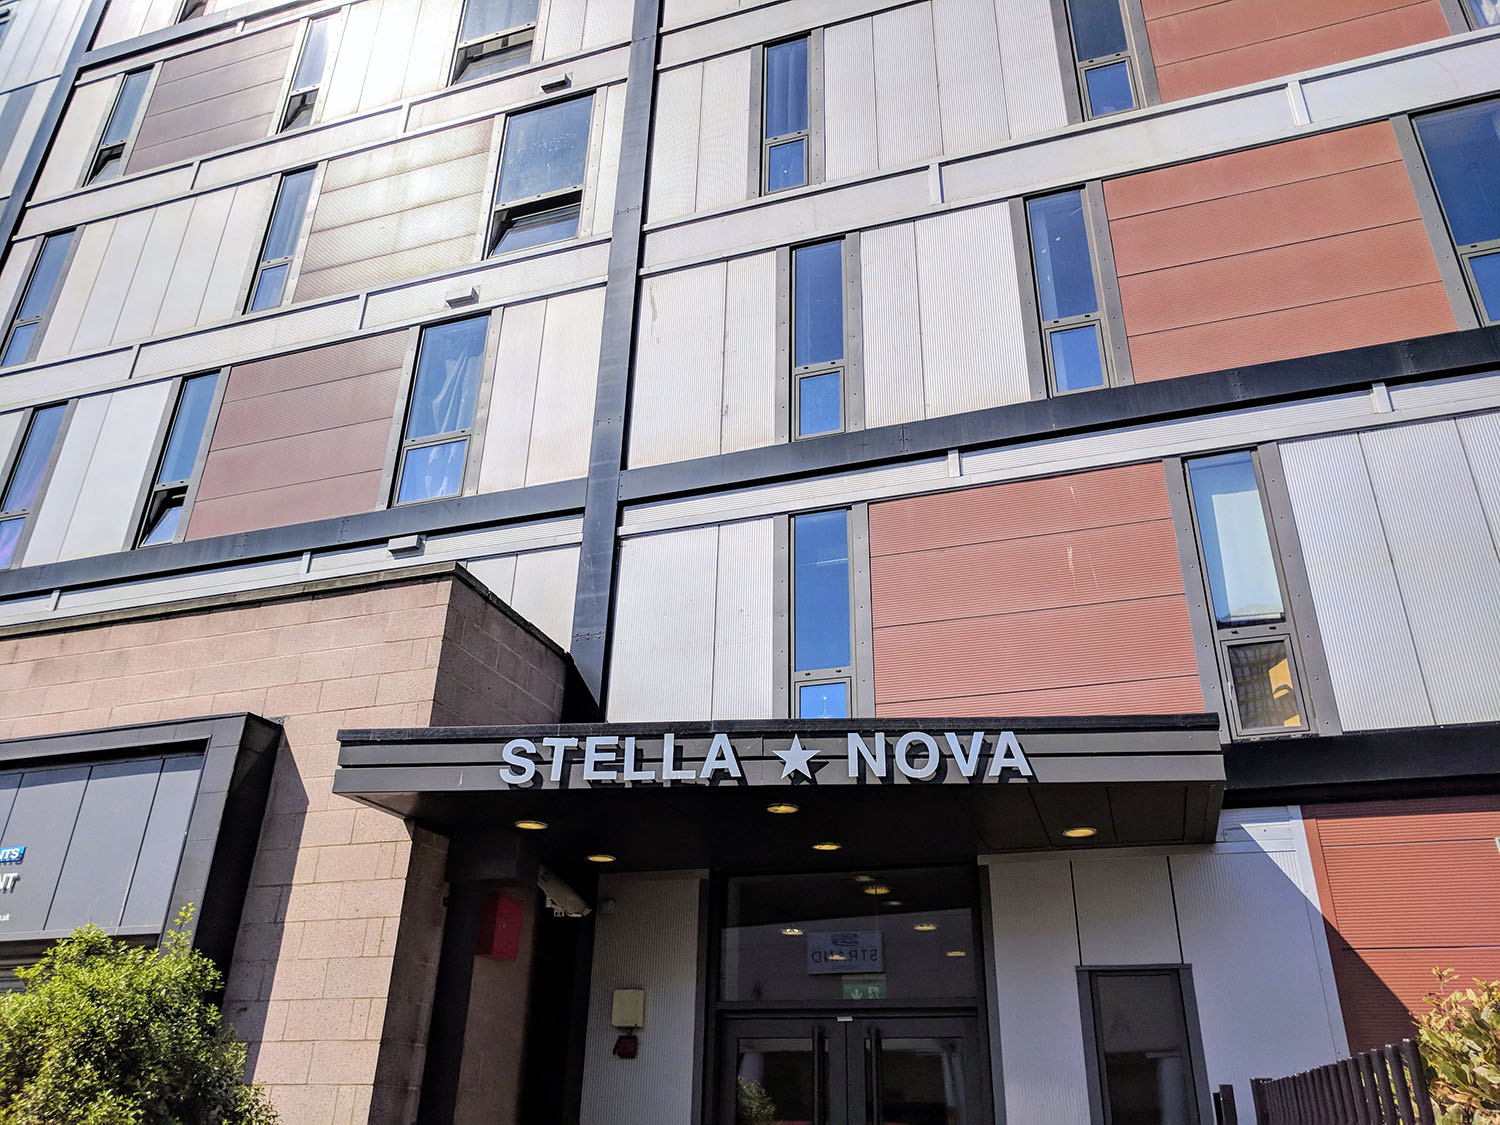 2 bedroom apartment for sale, Stella Nova, Bootle